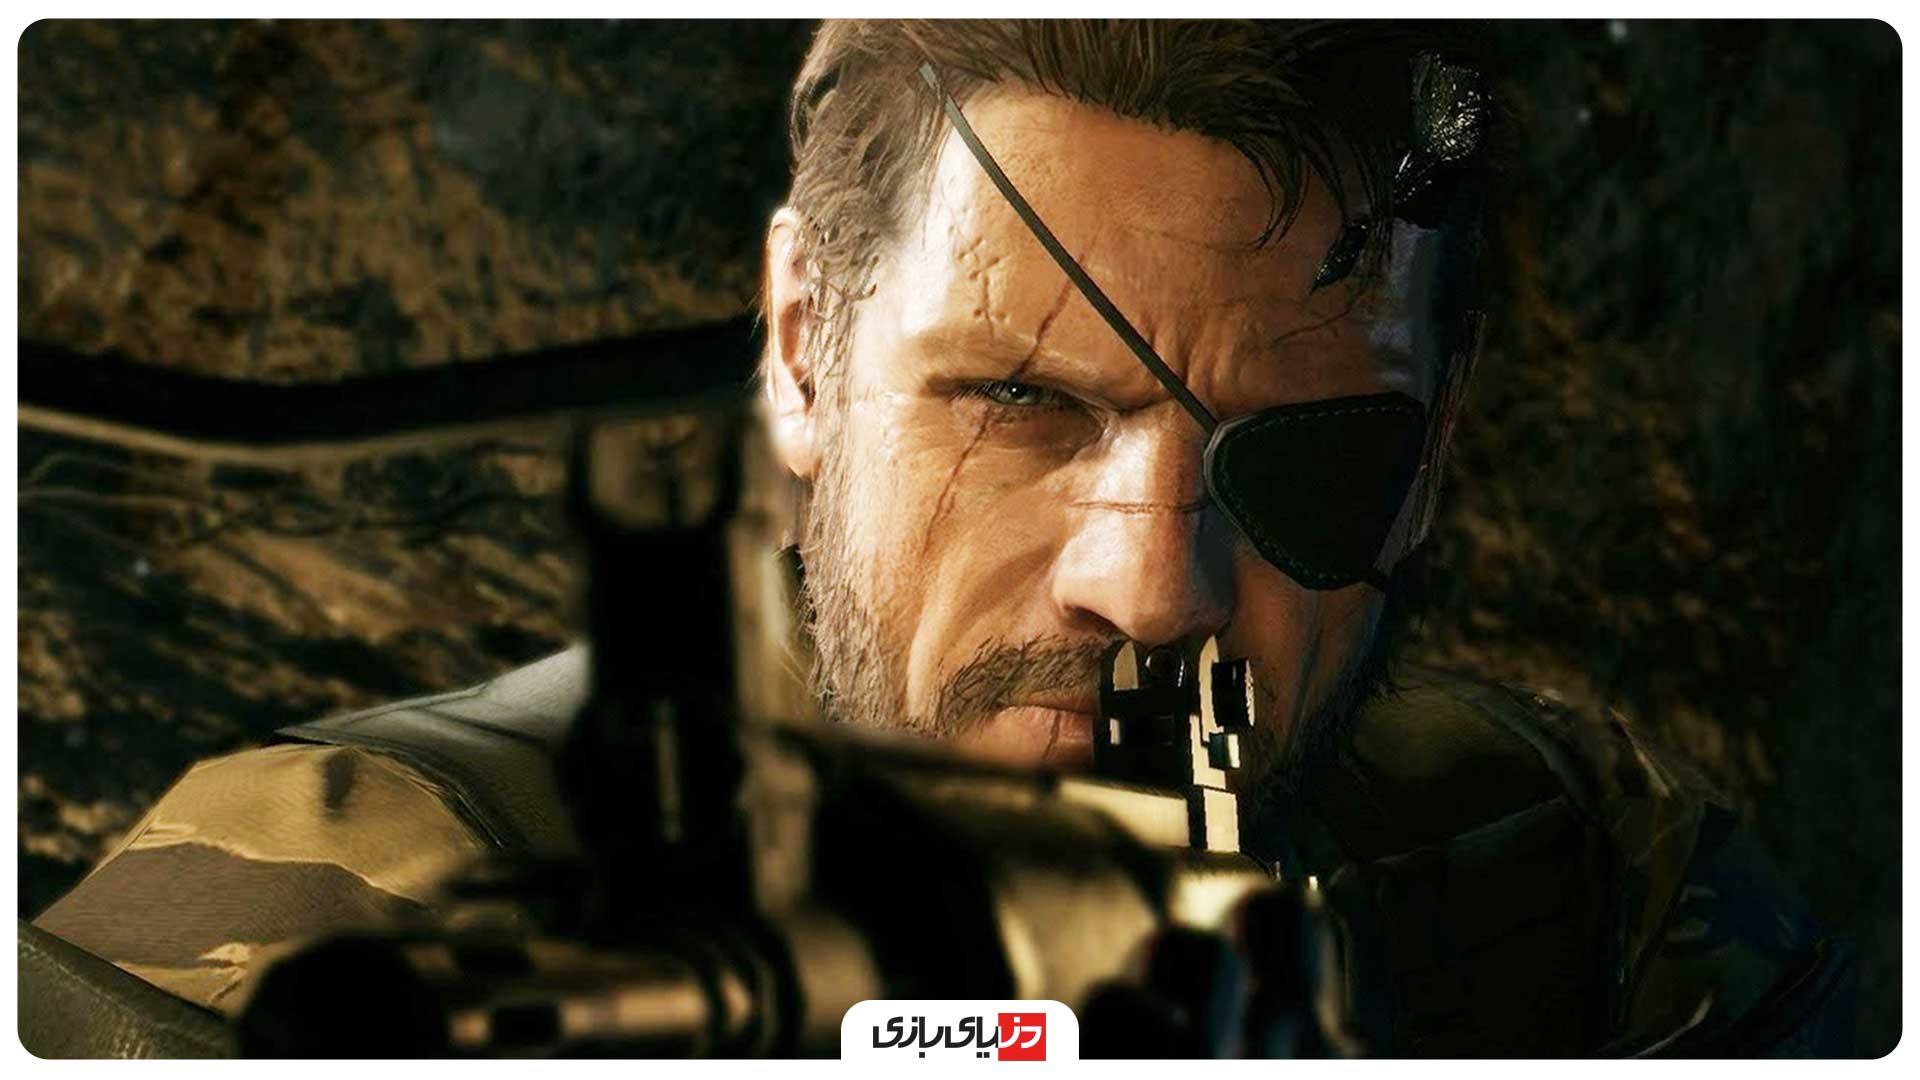 لینک نصب بازی  Metal Gear Solid V The Phantom Pain